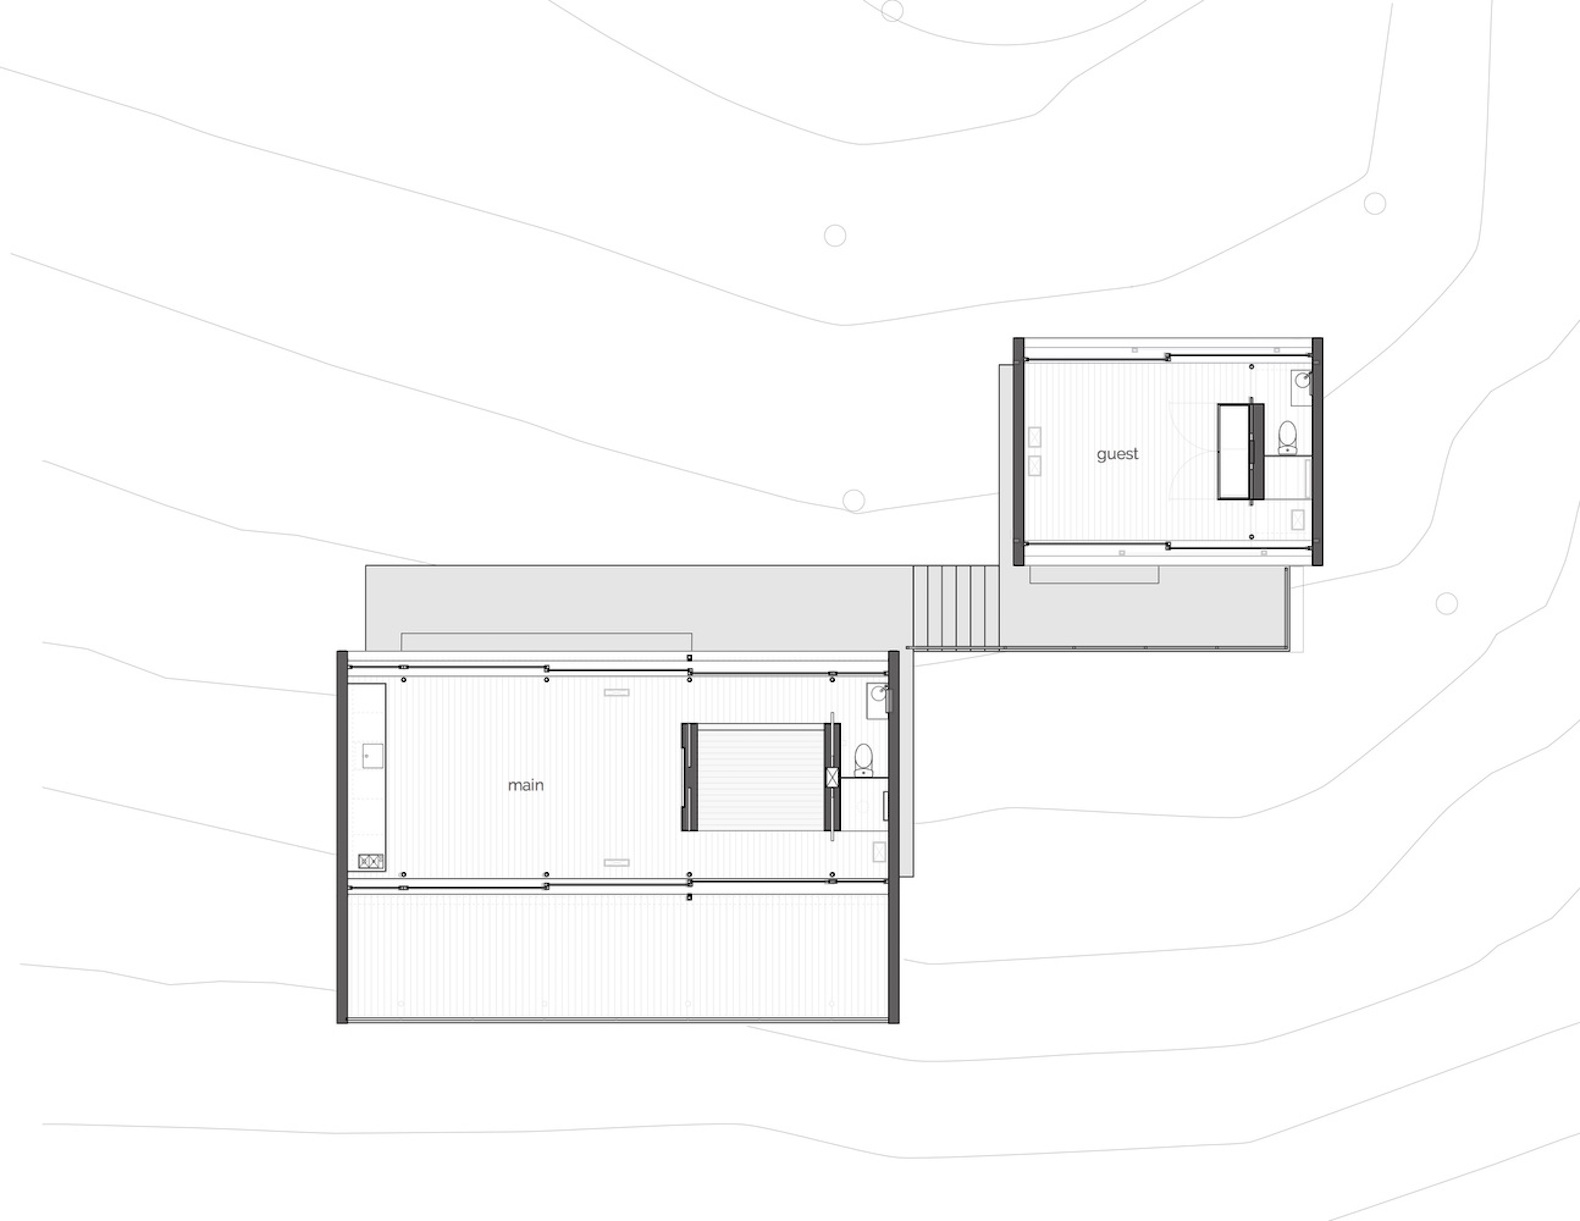 Apple design director perfects a prefab home into an ultra-minimal, modern dwelling